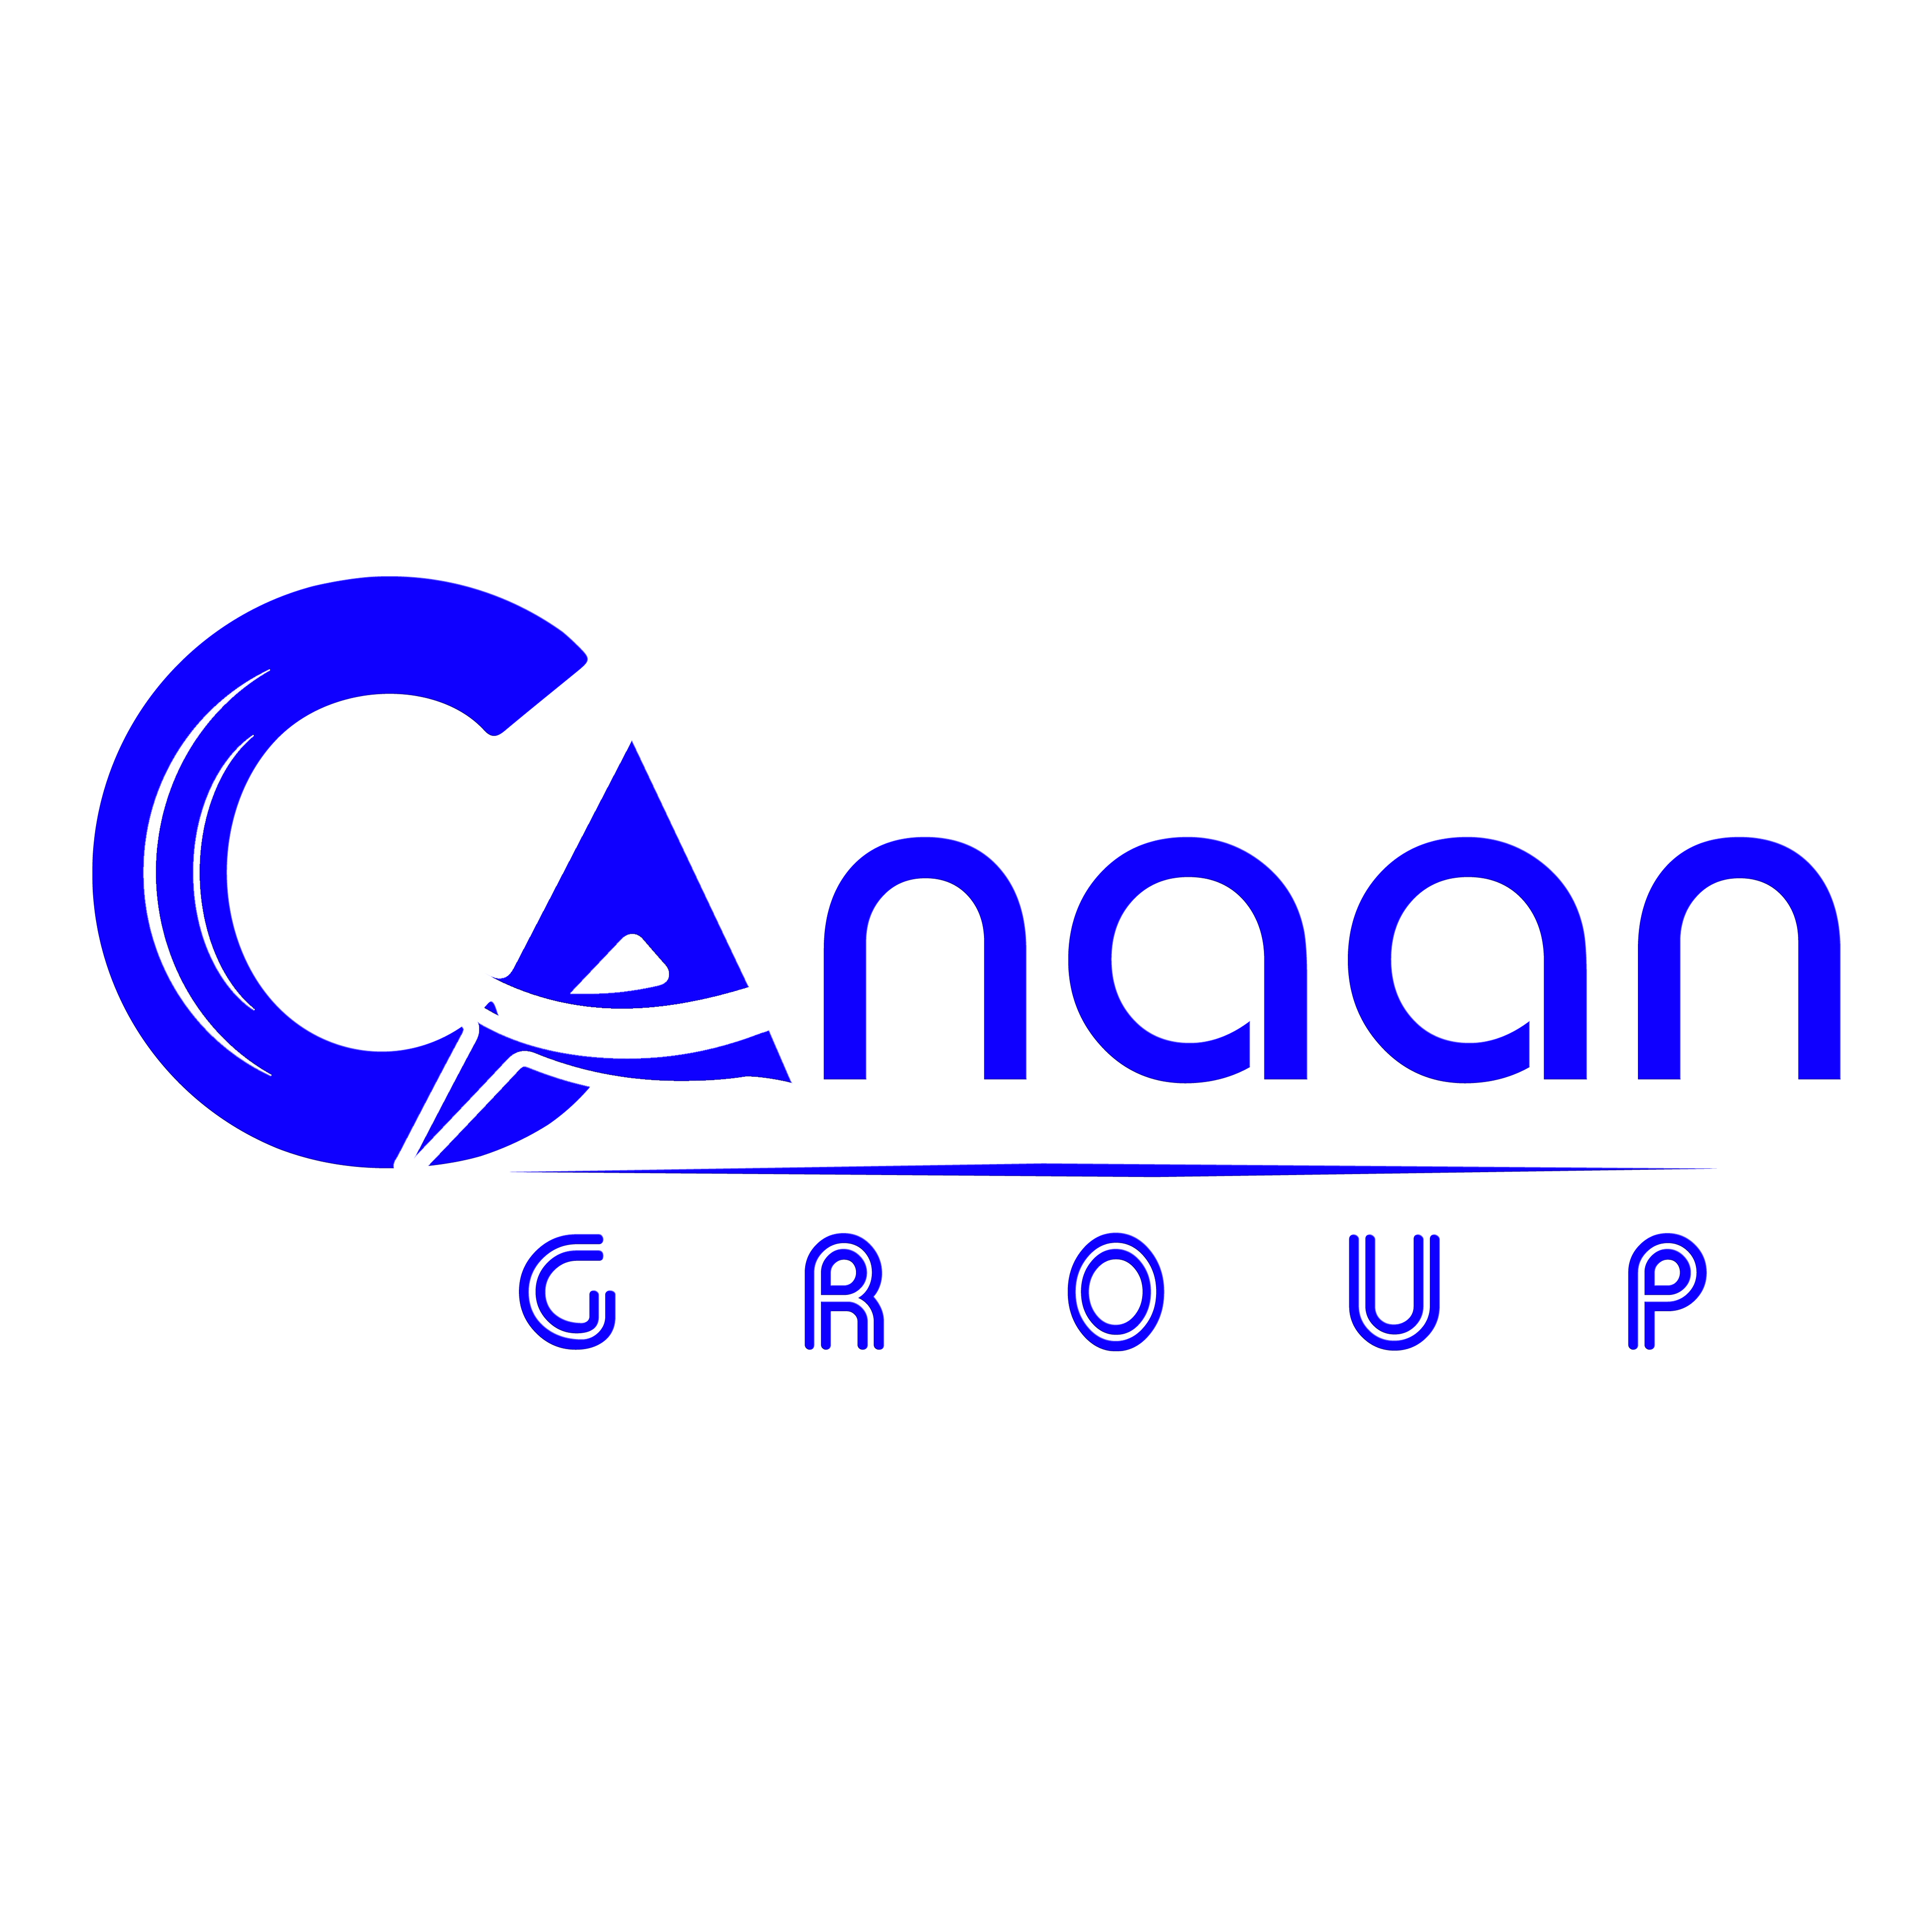 Canaan Group